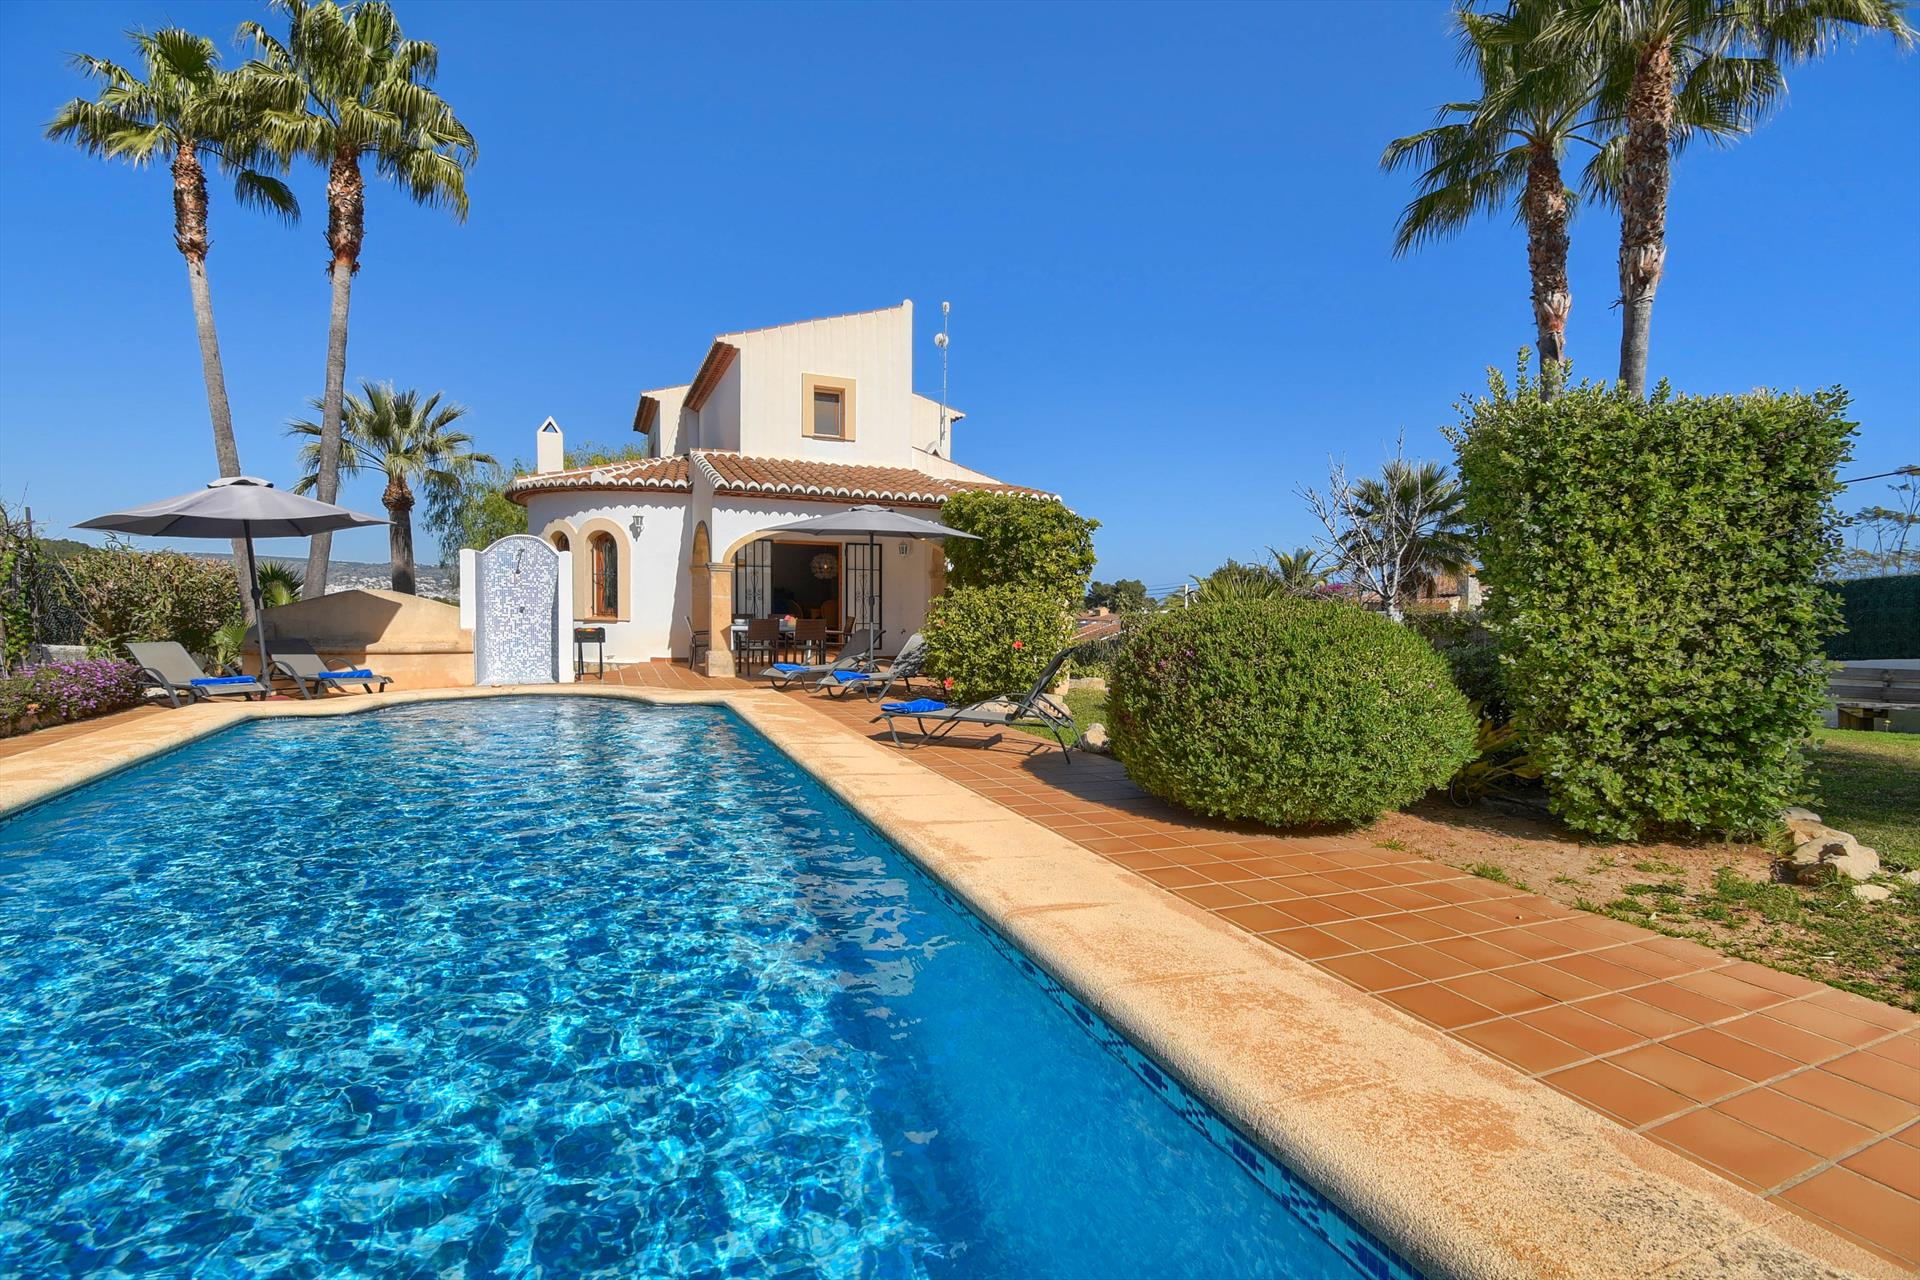 El Signo de Aries, Classic and comfortable villa  with private pool in Javea, on the Costa Blanca, Spain for 6 persons...